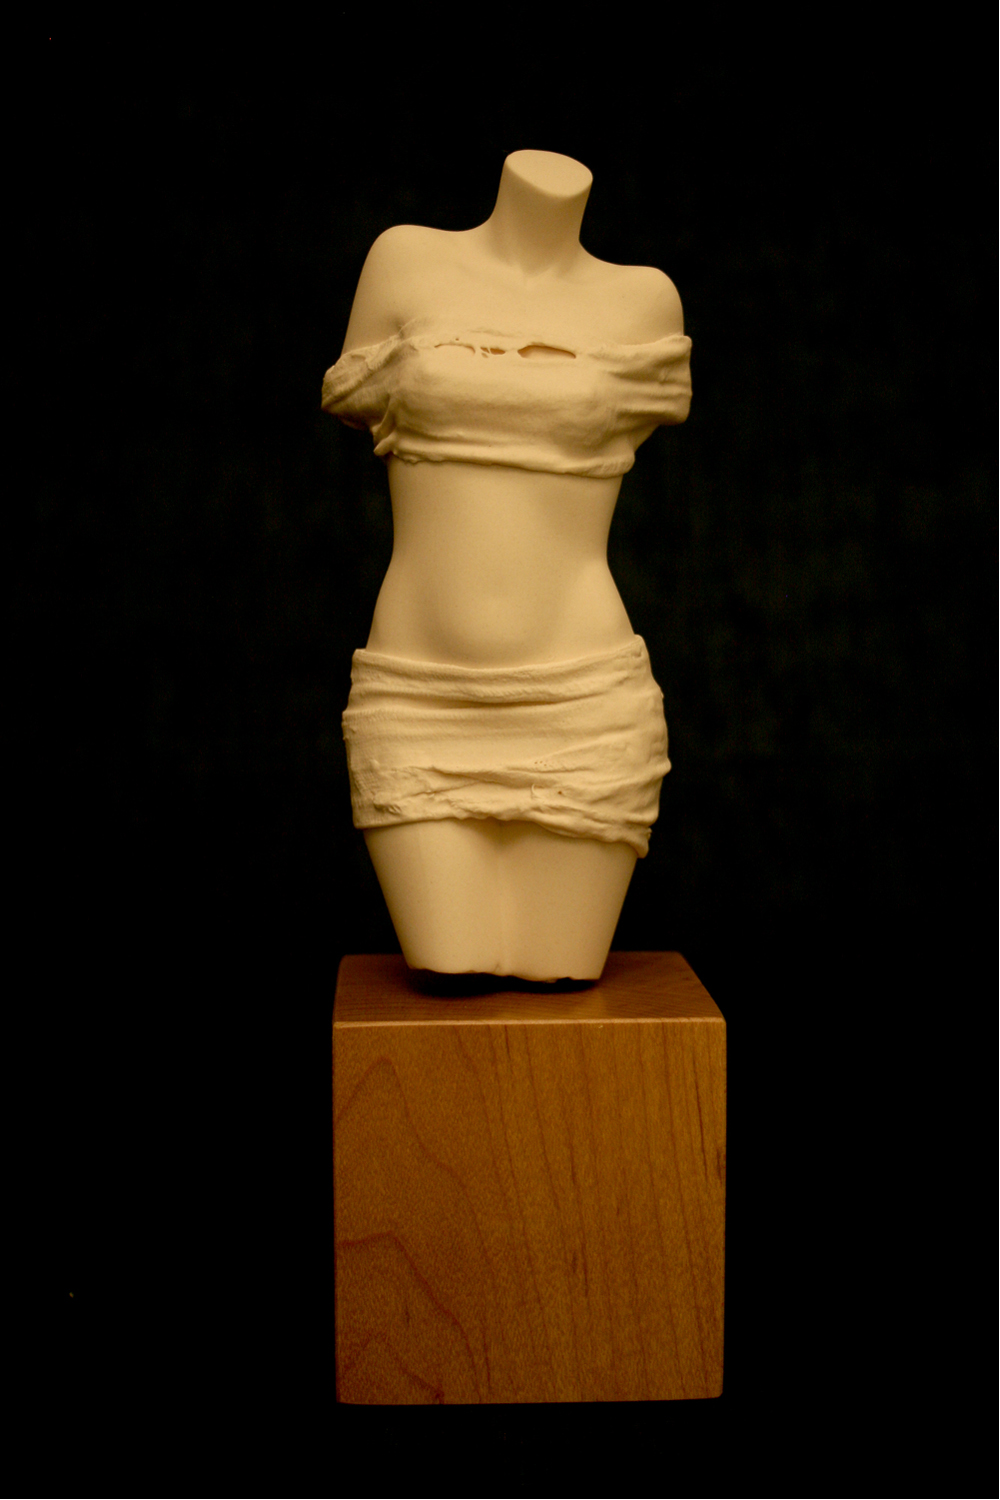 Aphrodite £155 Porcelain. Dimensions: 230mm x 70mm x 70mm Signed edition. In stock